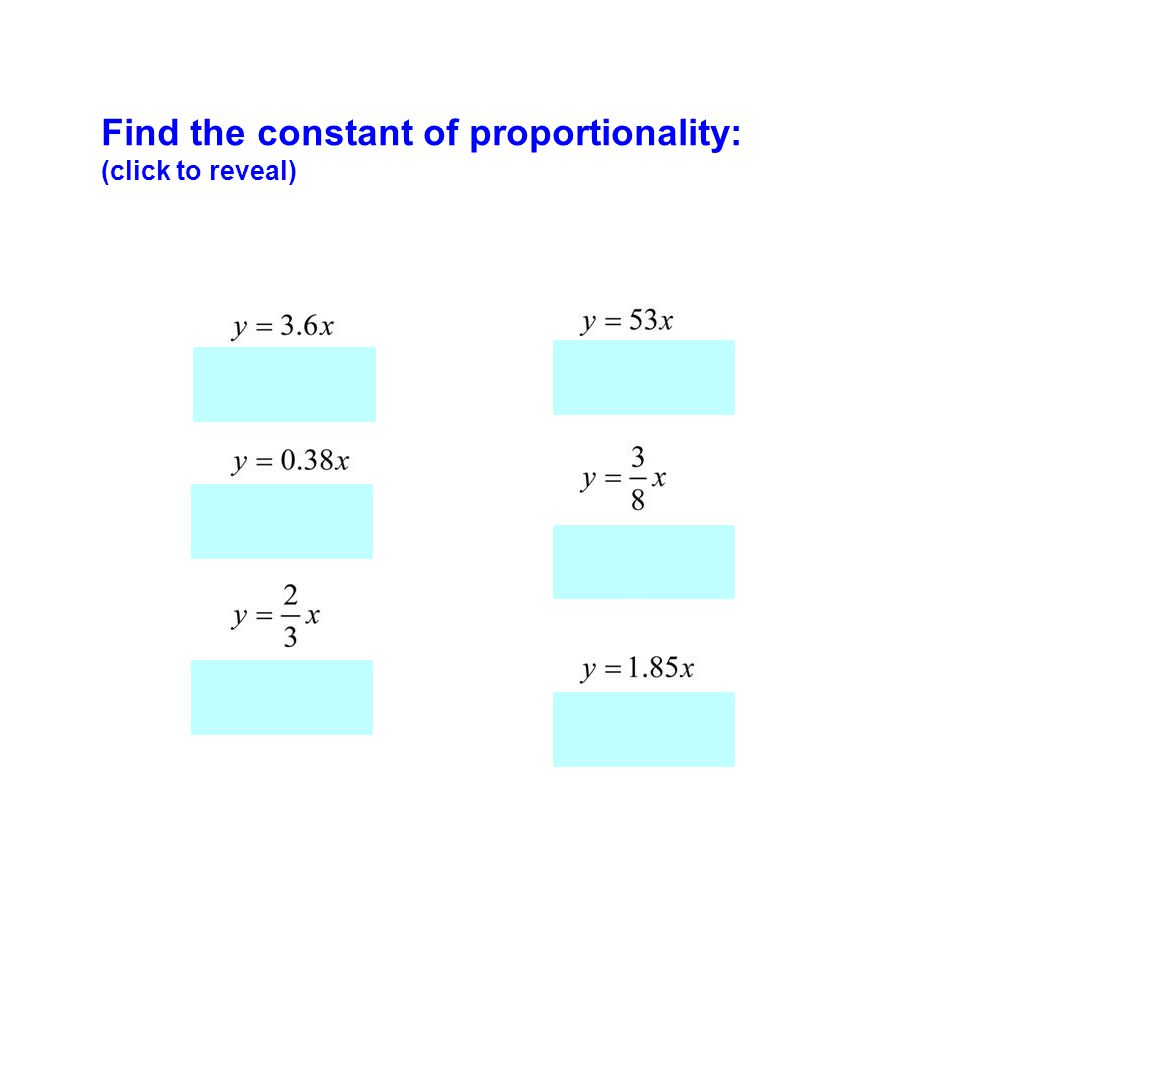 Find the constant of proportionality: